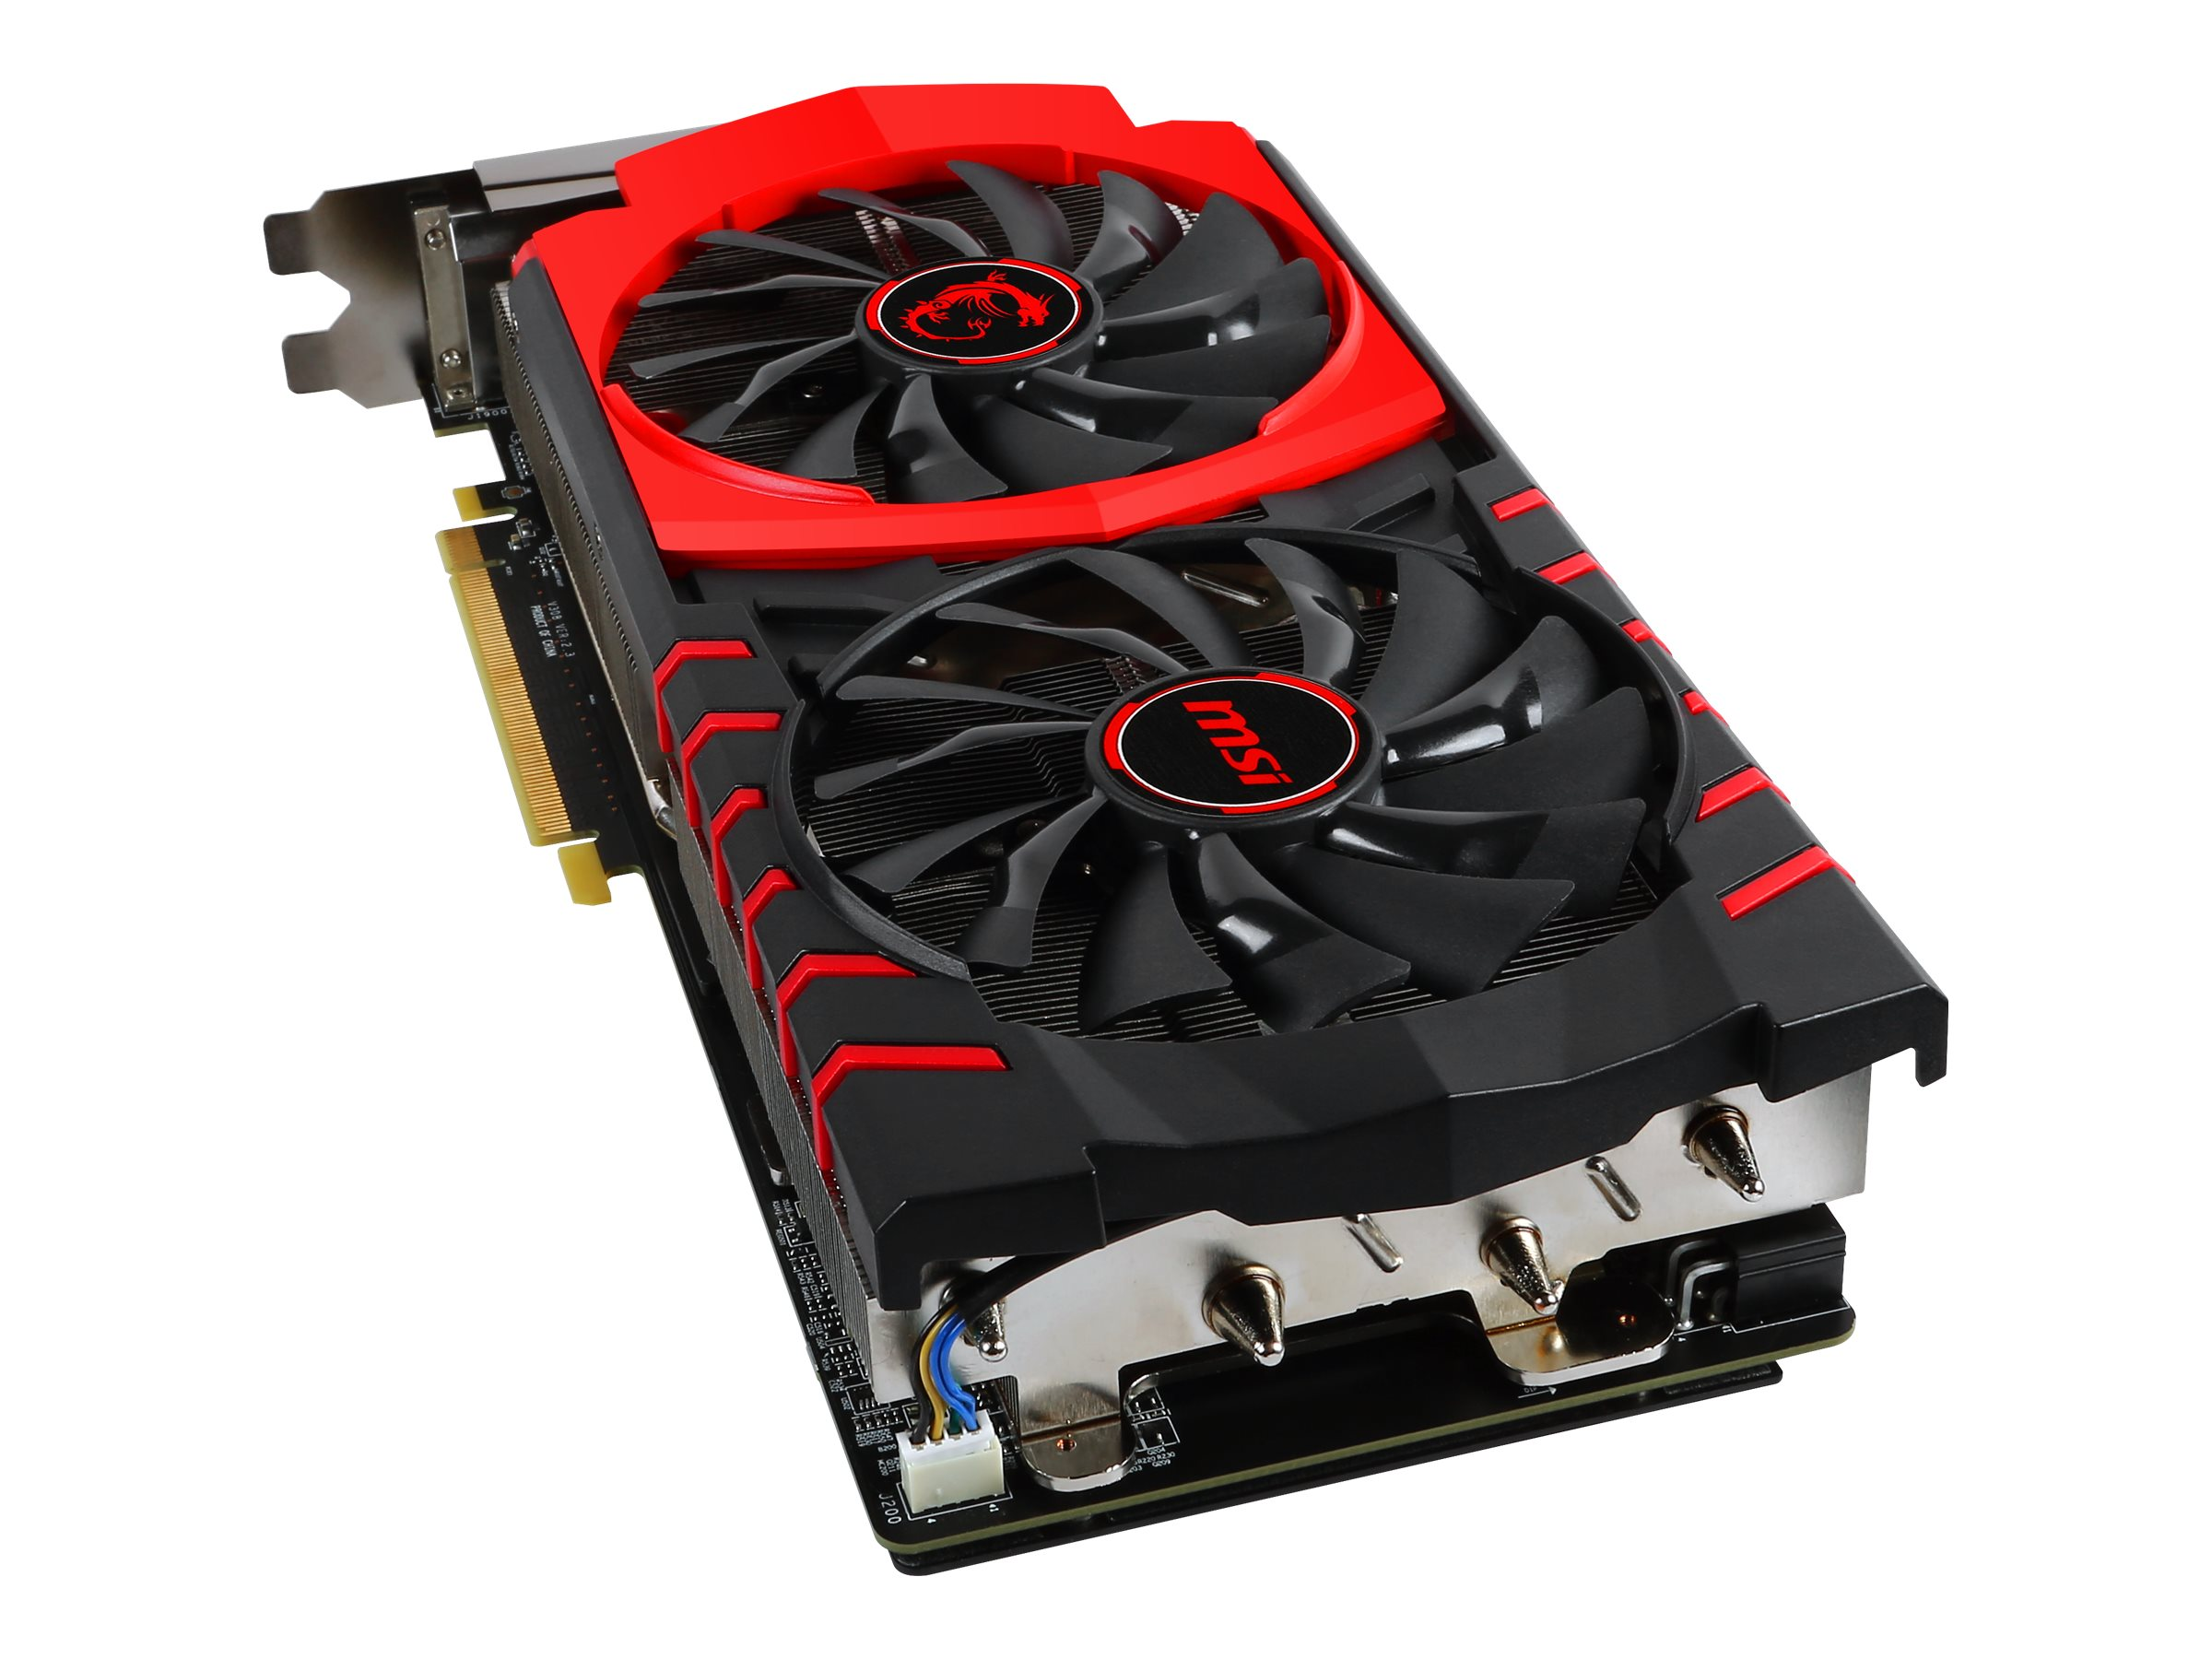 Microstar Radeon R9 390X PCIe Graphics Card, 8GB GDDR5, R9 390X GAMING 8G, 23203273, Graphics/Video Accelerators